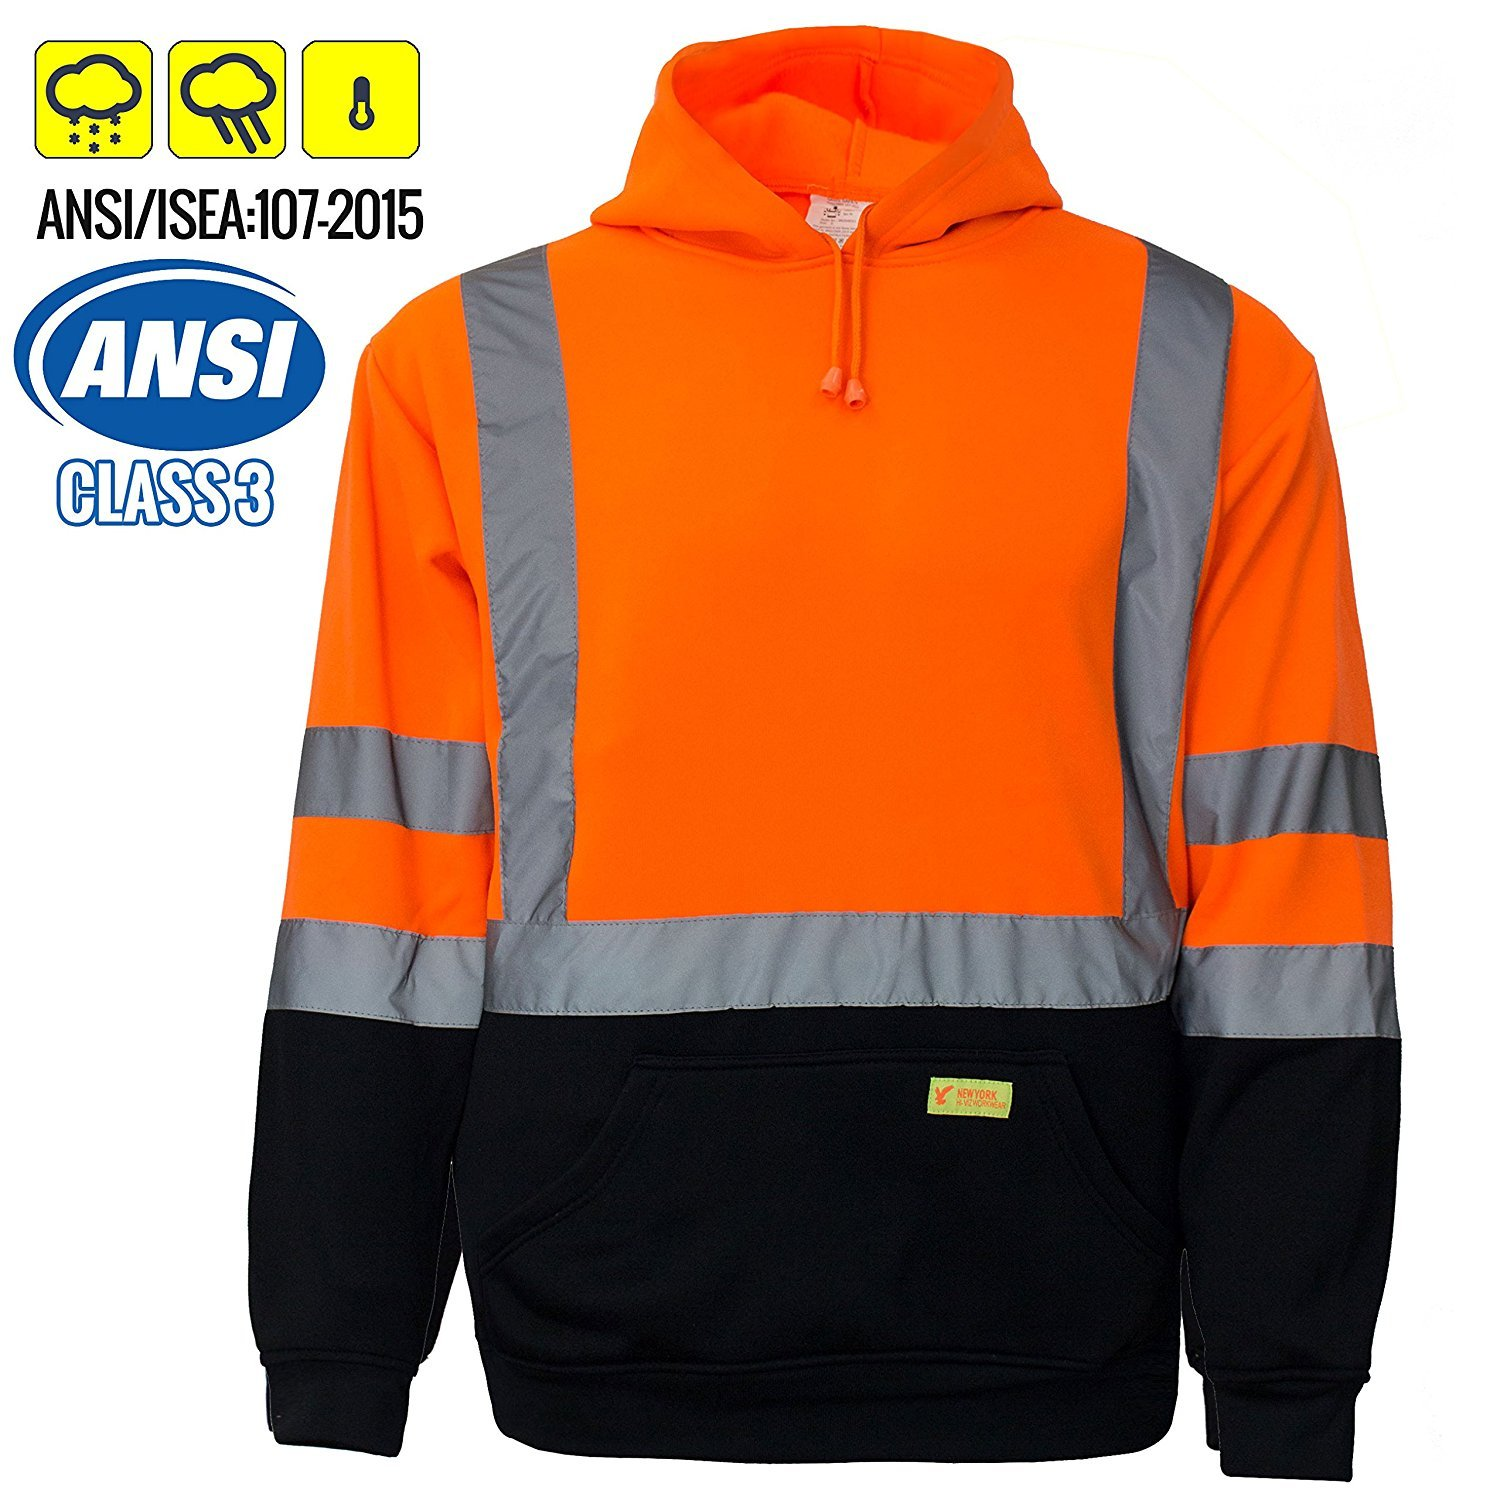 New York Hi-Viz Workwear H8311 Men's ANSI Class 3 High Visibility Class 3 Sweatshirt, Hooded Pullover, Knit Lining, Black Bottom (Extra Large, Orange)